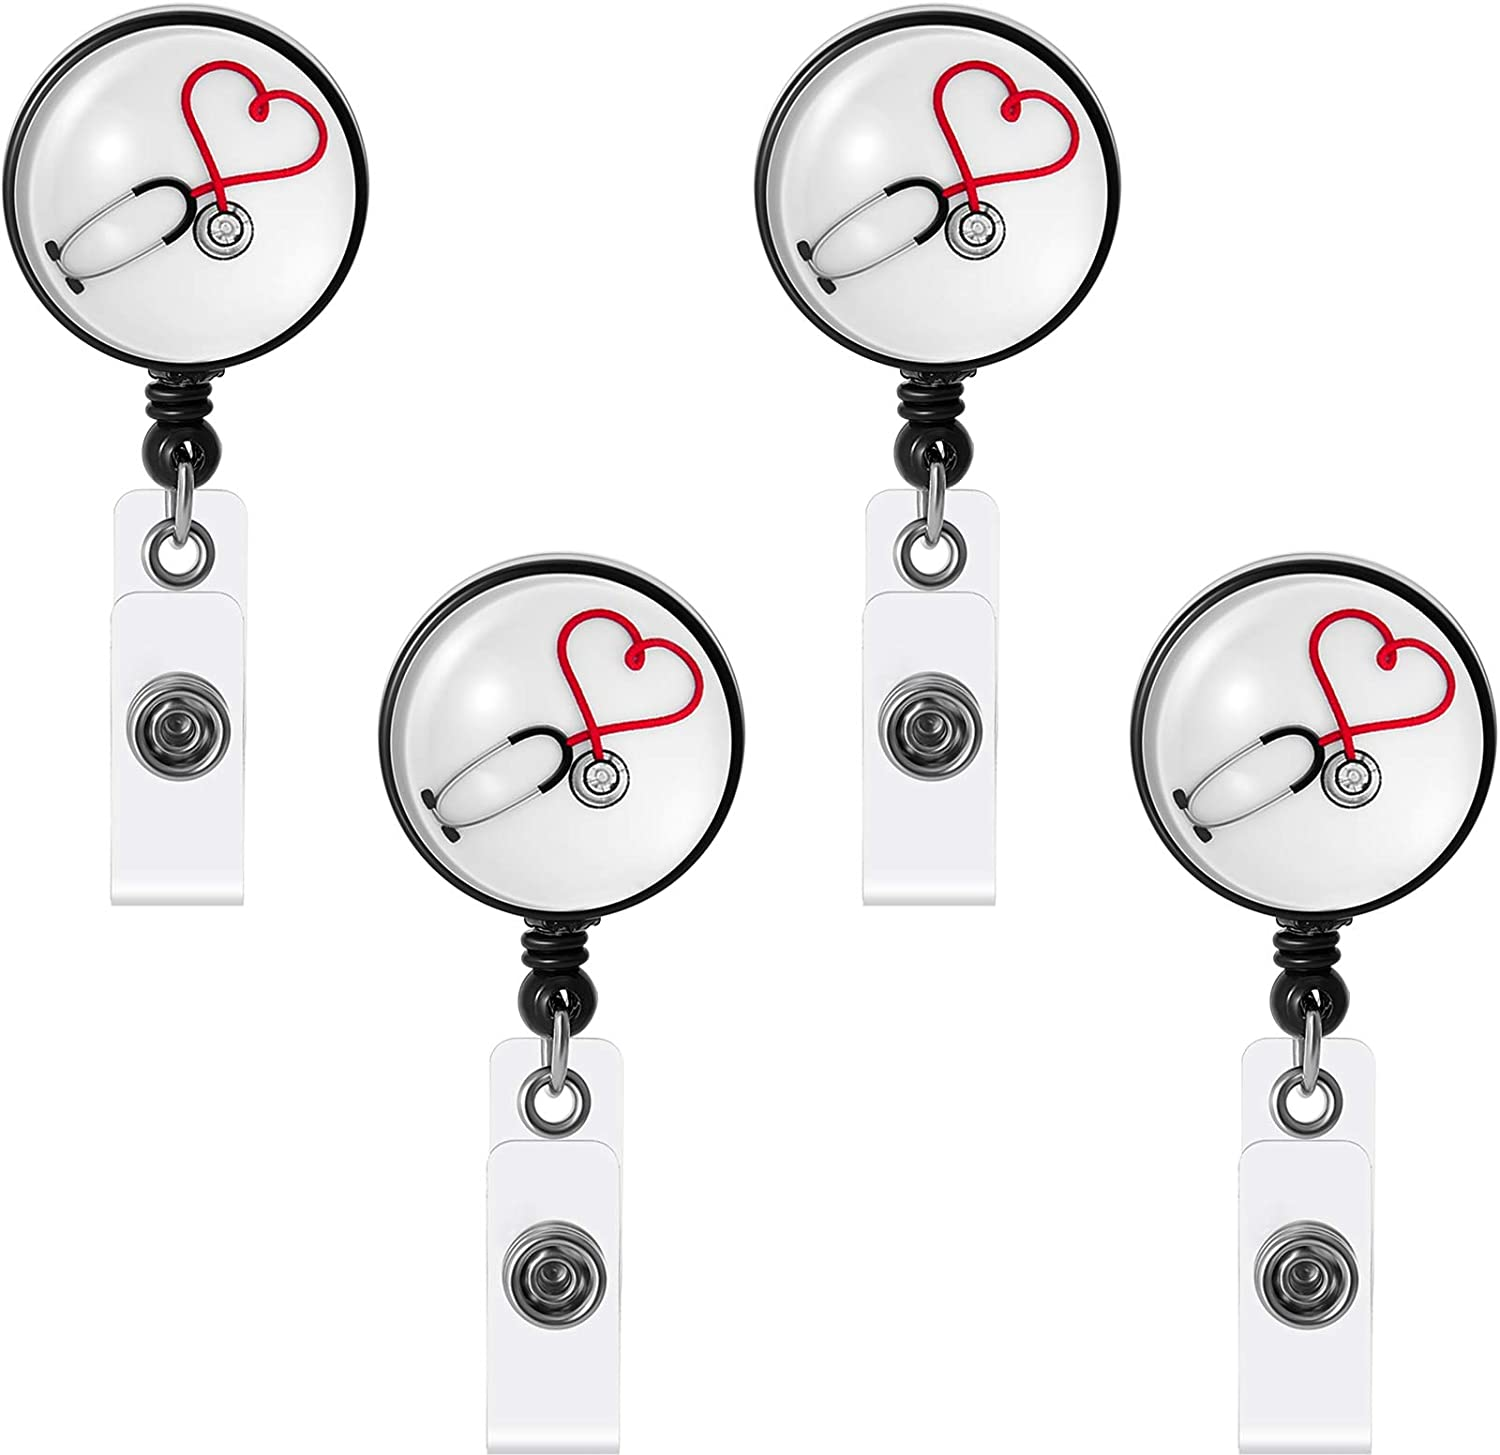 4 Pieces Retractable Badge Alligator Clip Retractable Badge Holder ID Badge Reel Clip for Nurse Work Badge Name ID Card (Classic Style)